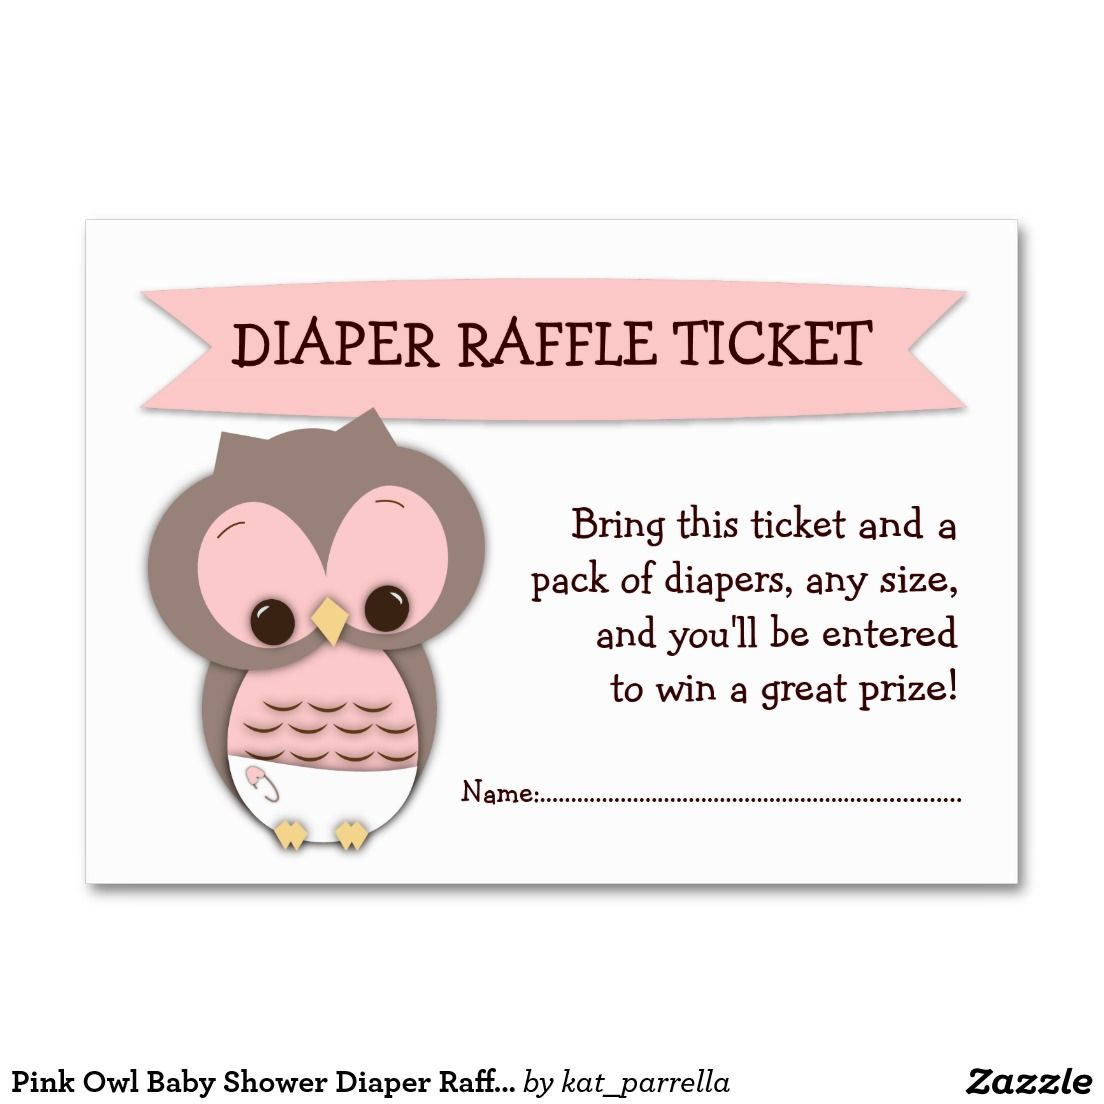 Pink Owl Baby Shower Diaper Raffle Ticket Insert Large Business ...